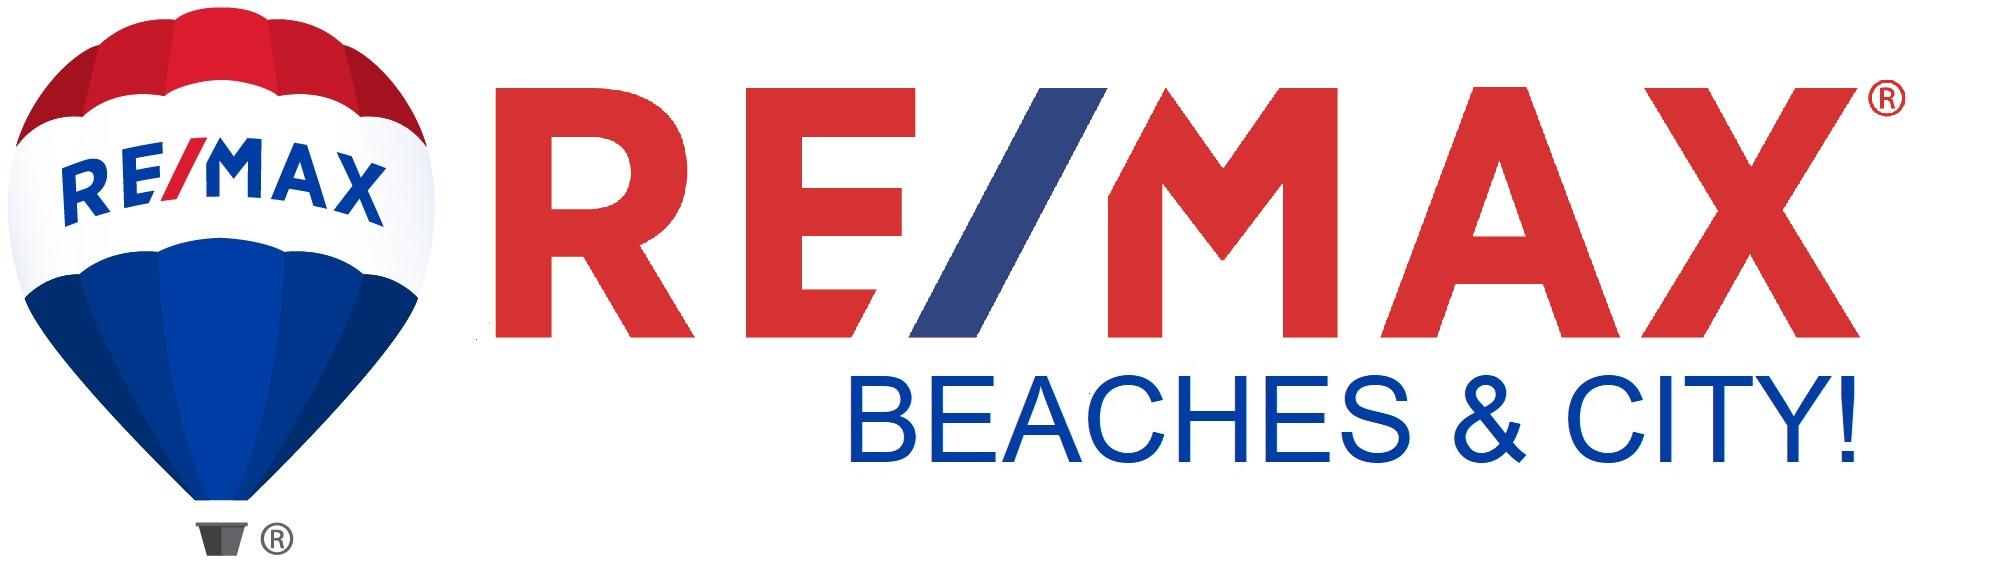 RE/MAX Beaches & City!